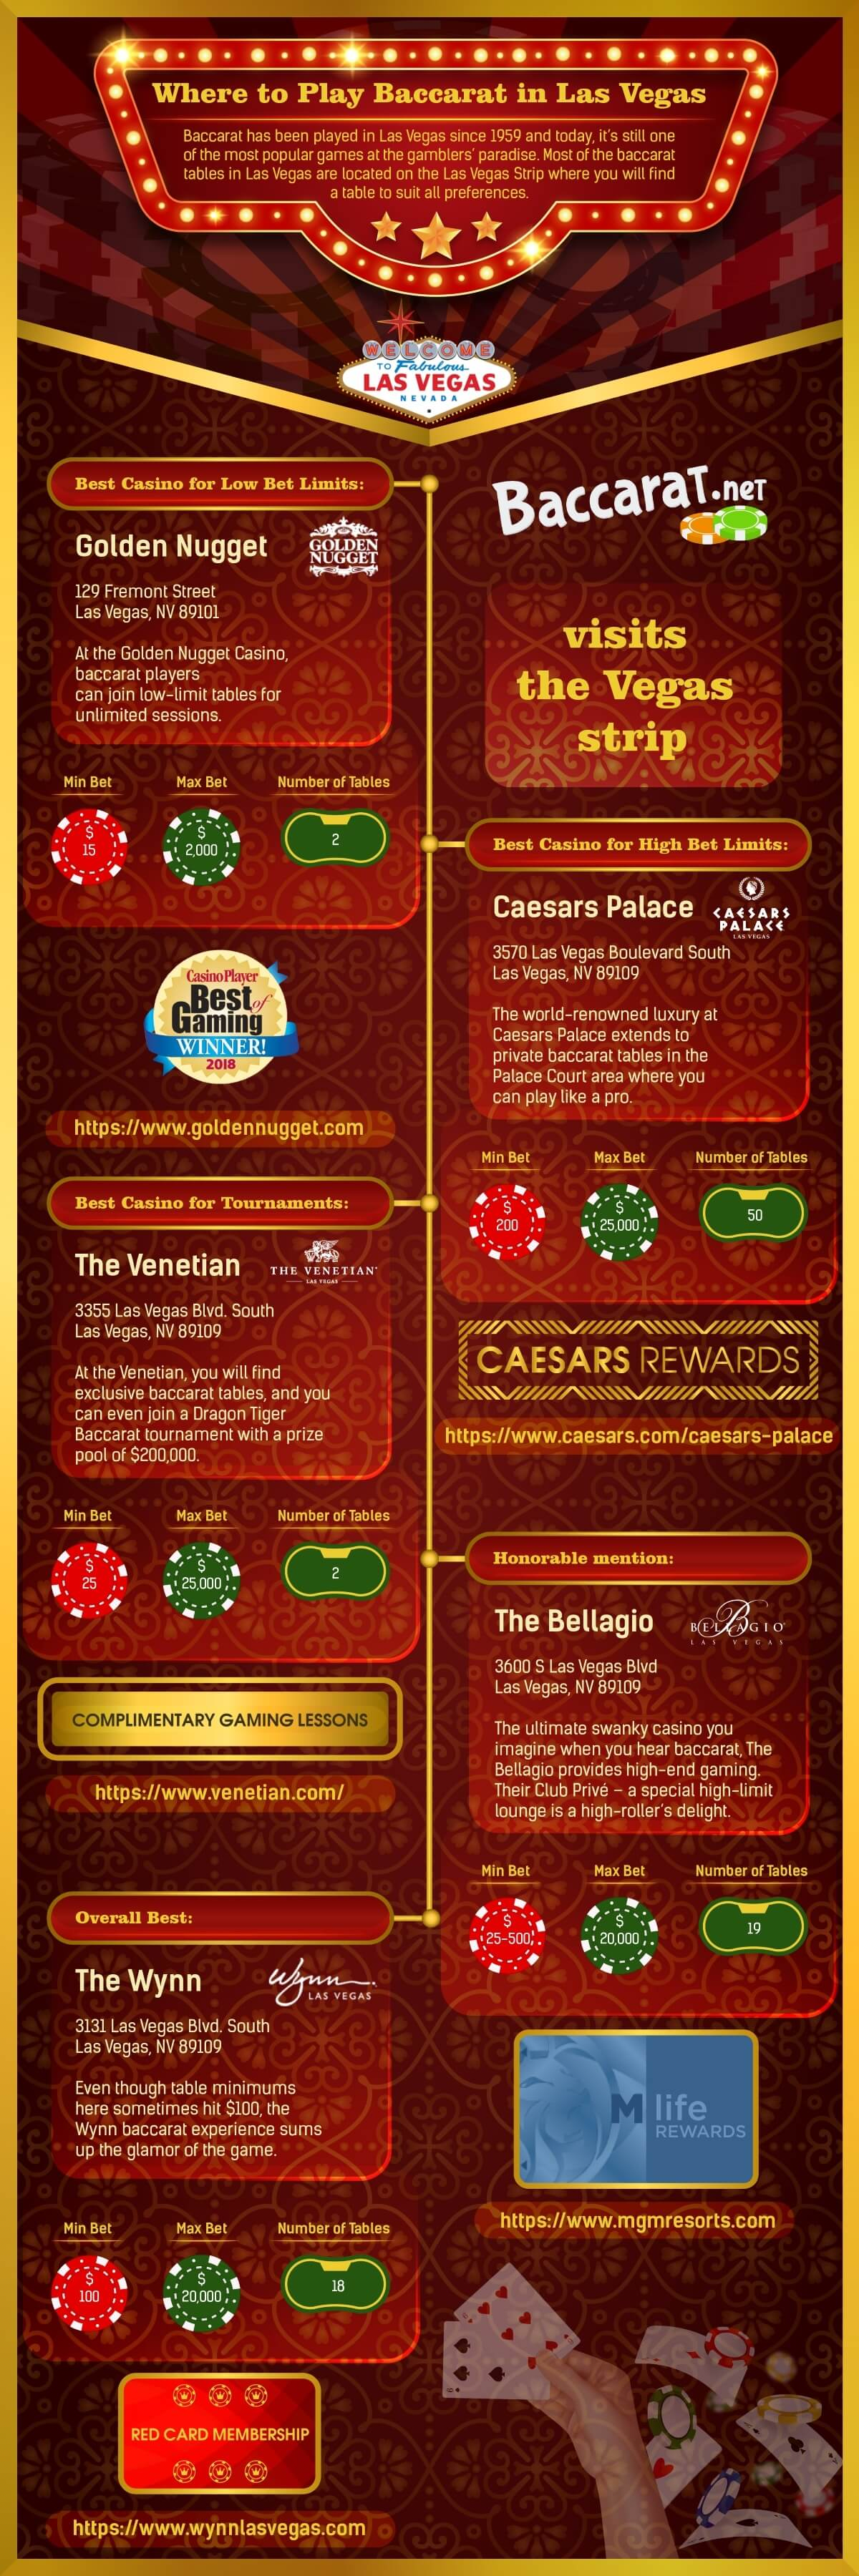 Online Baccarat Best Casinos In 2020 To Play Baccarat Online